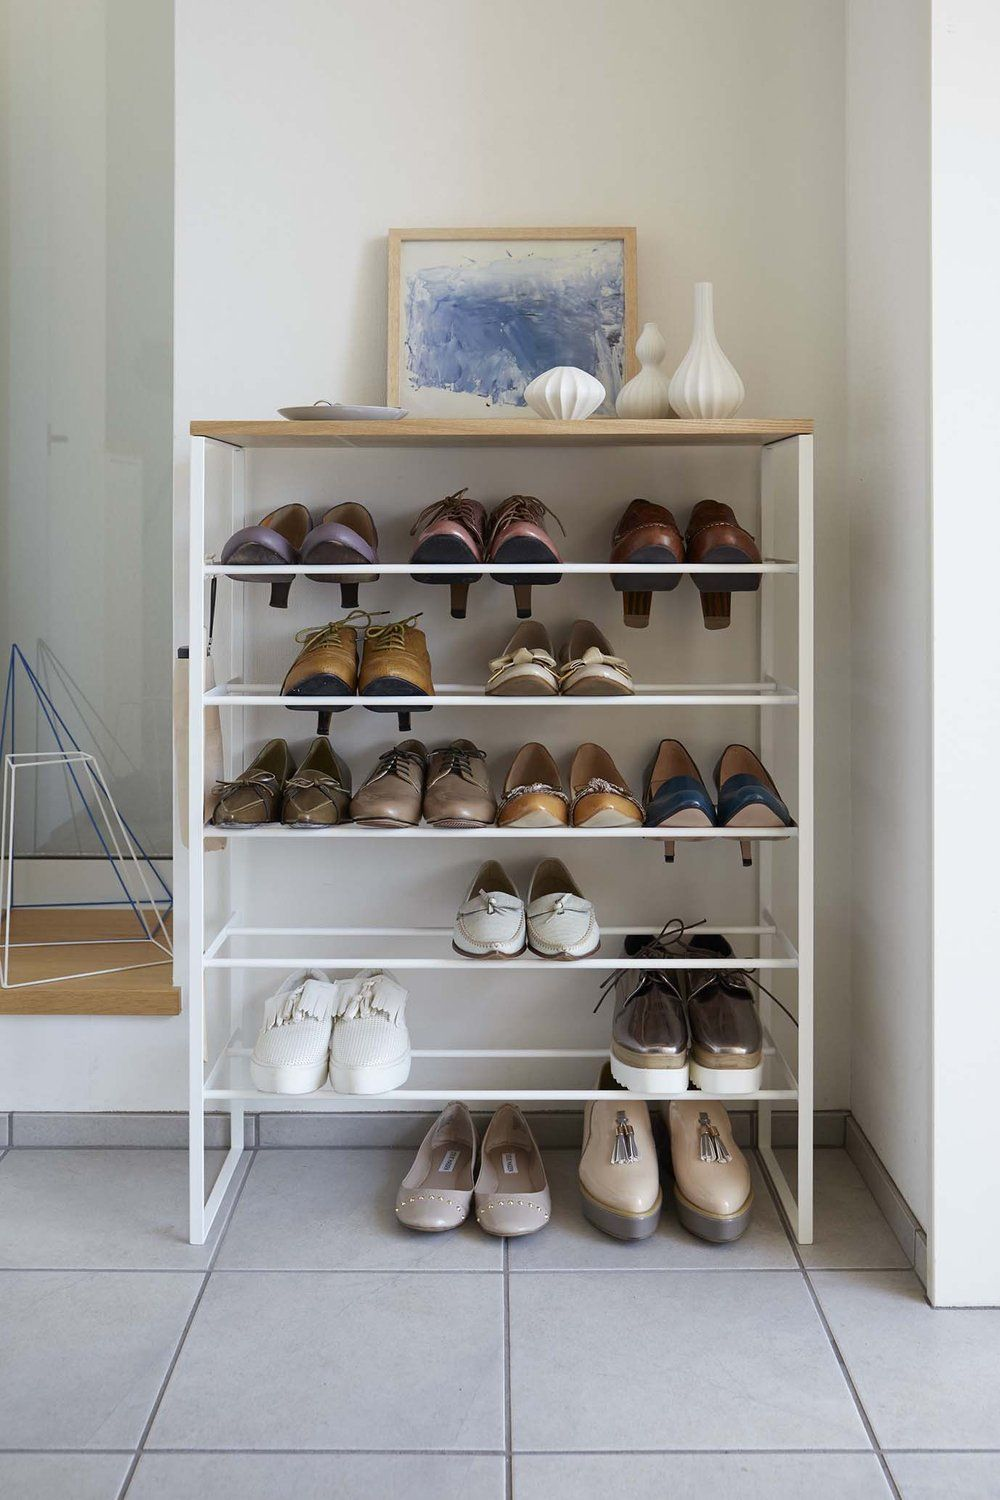 6 Tier Wood Top Shoe Rack In 2020 With Images Shoe Rack Shoe Rack For Sale Shoe Shelves